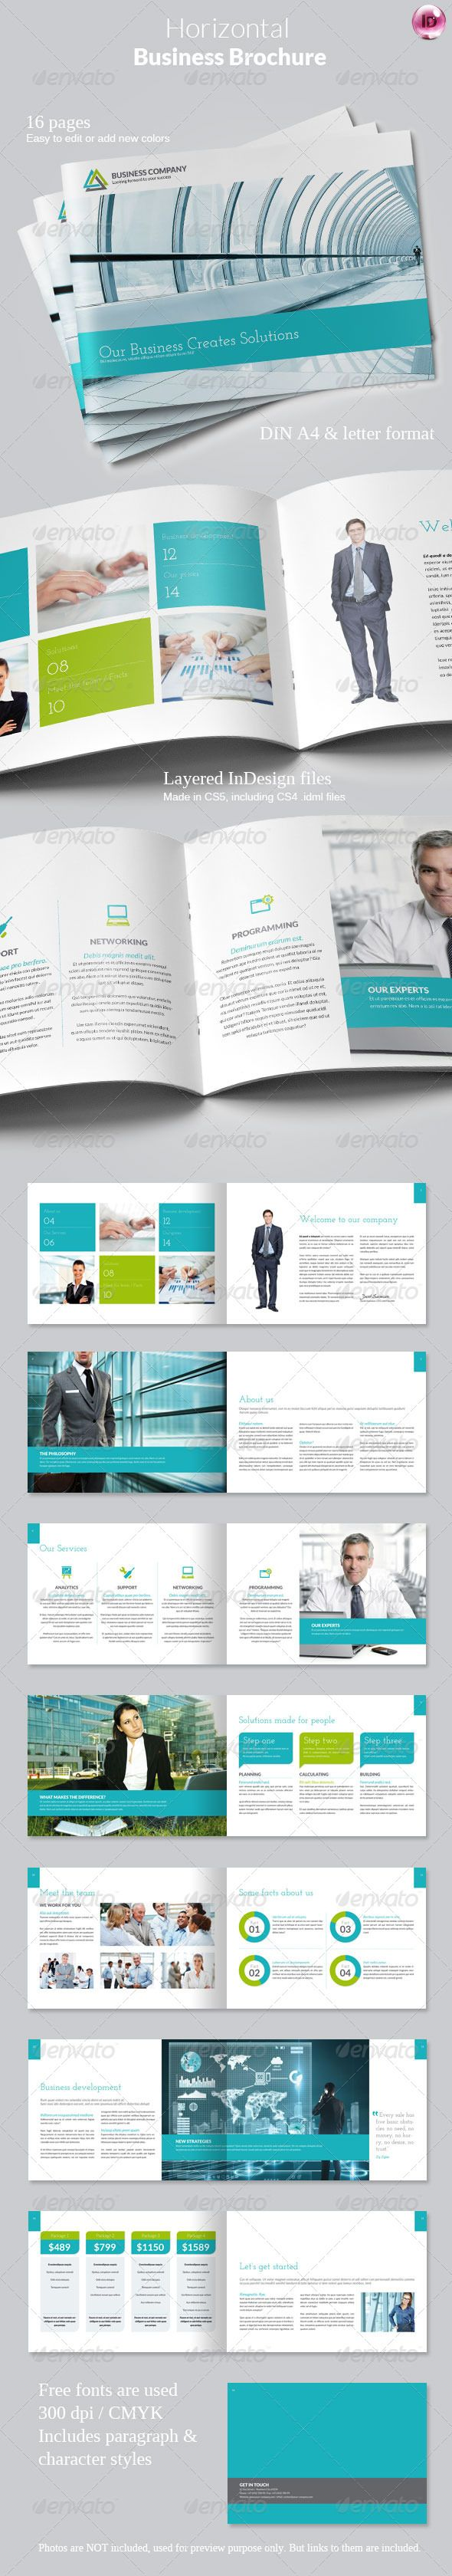 Horizontal Business Brochure - Corporate Brochures